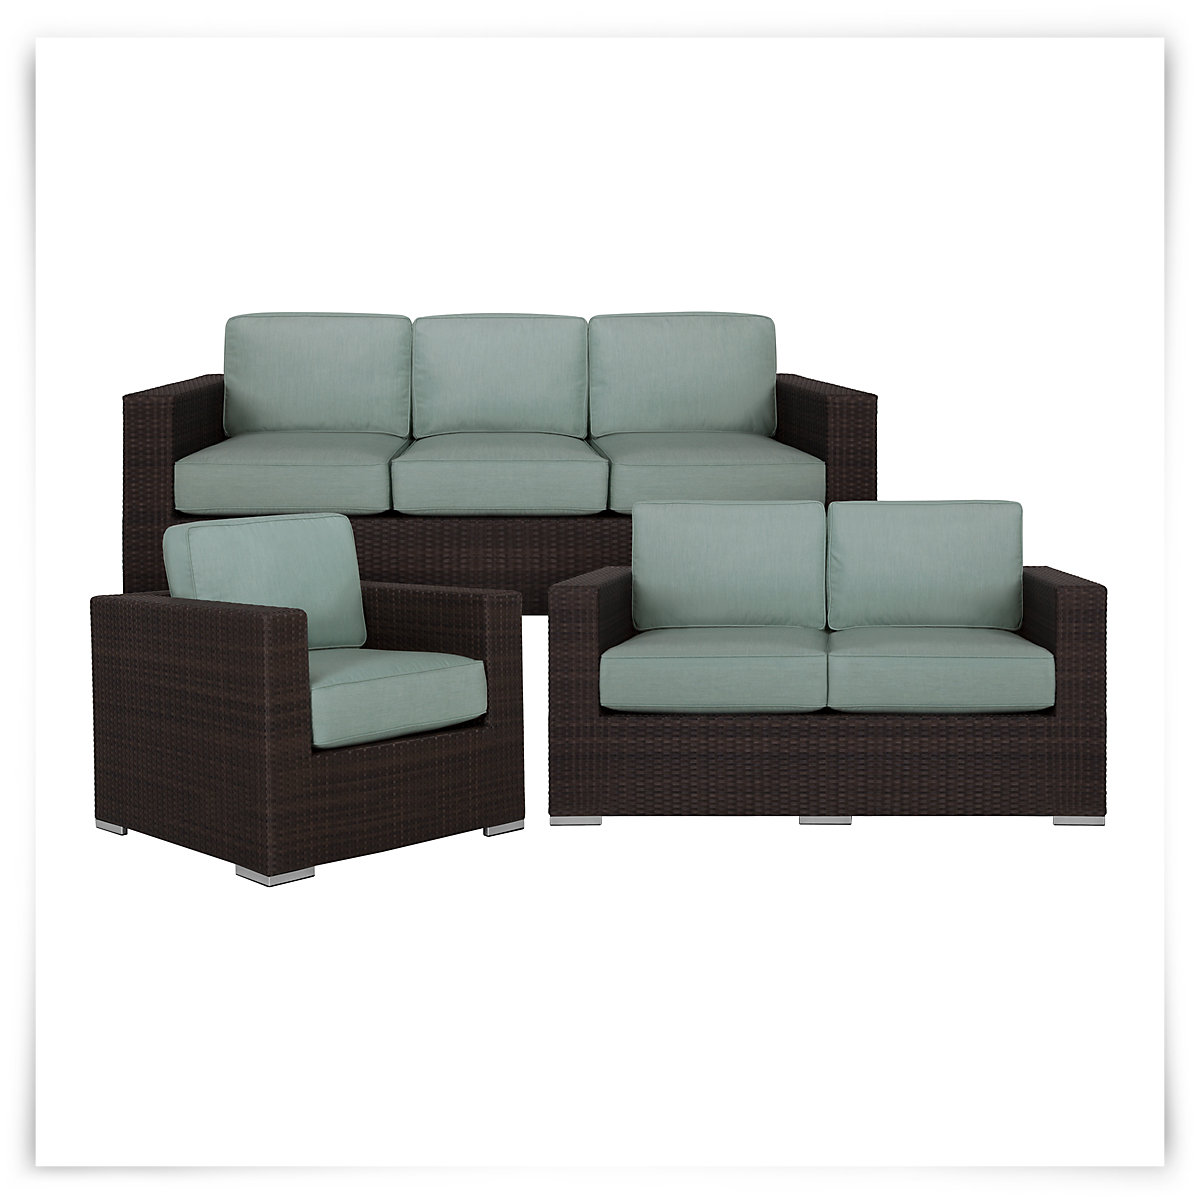 City Furniture: Fina Teal Outdoor Living Room Set on Outdoor Living Room Set id=72945